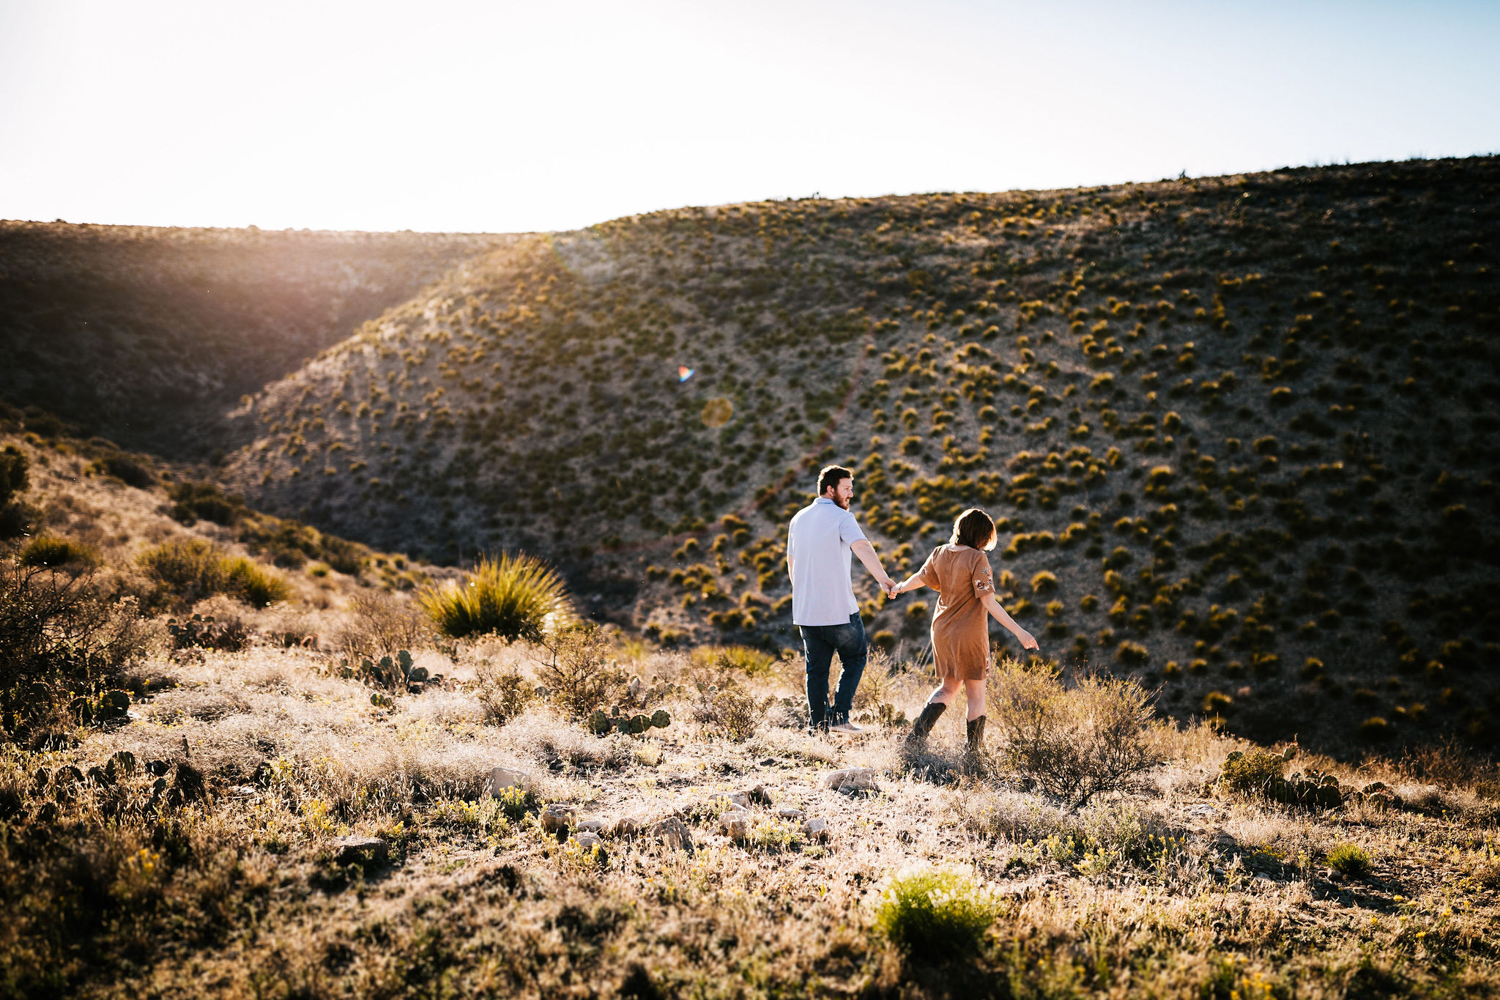 8. fun-carlsbad-photographer-andrea-van-orsouw-photography-wedding-natural-adventurous-new-mexico-2.jpg